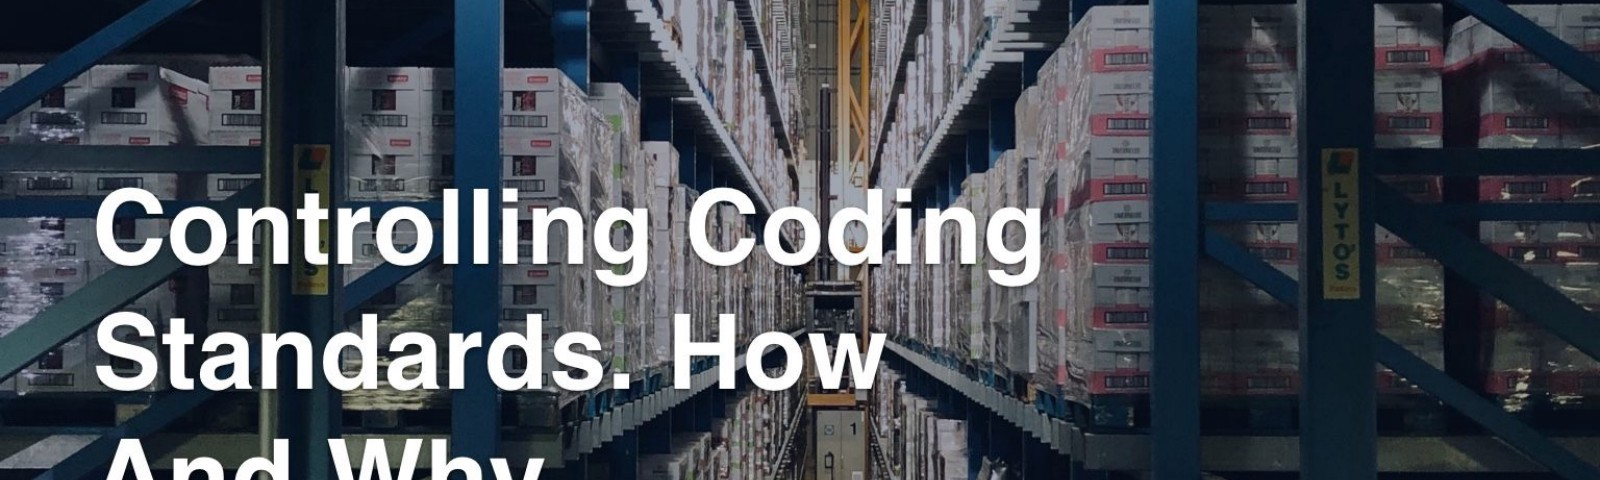 Controlling Coding Standards. How And Why